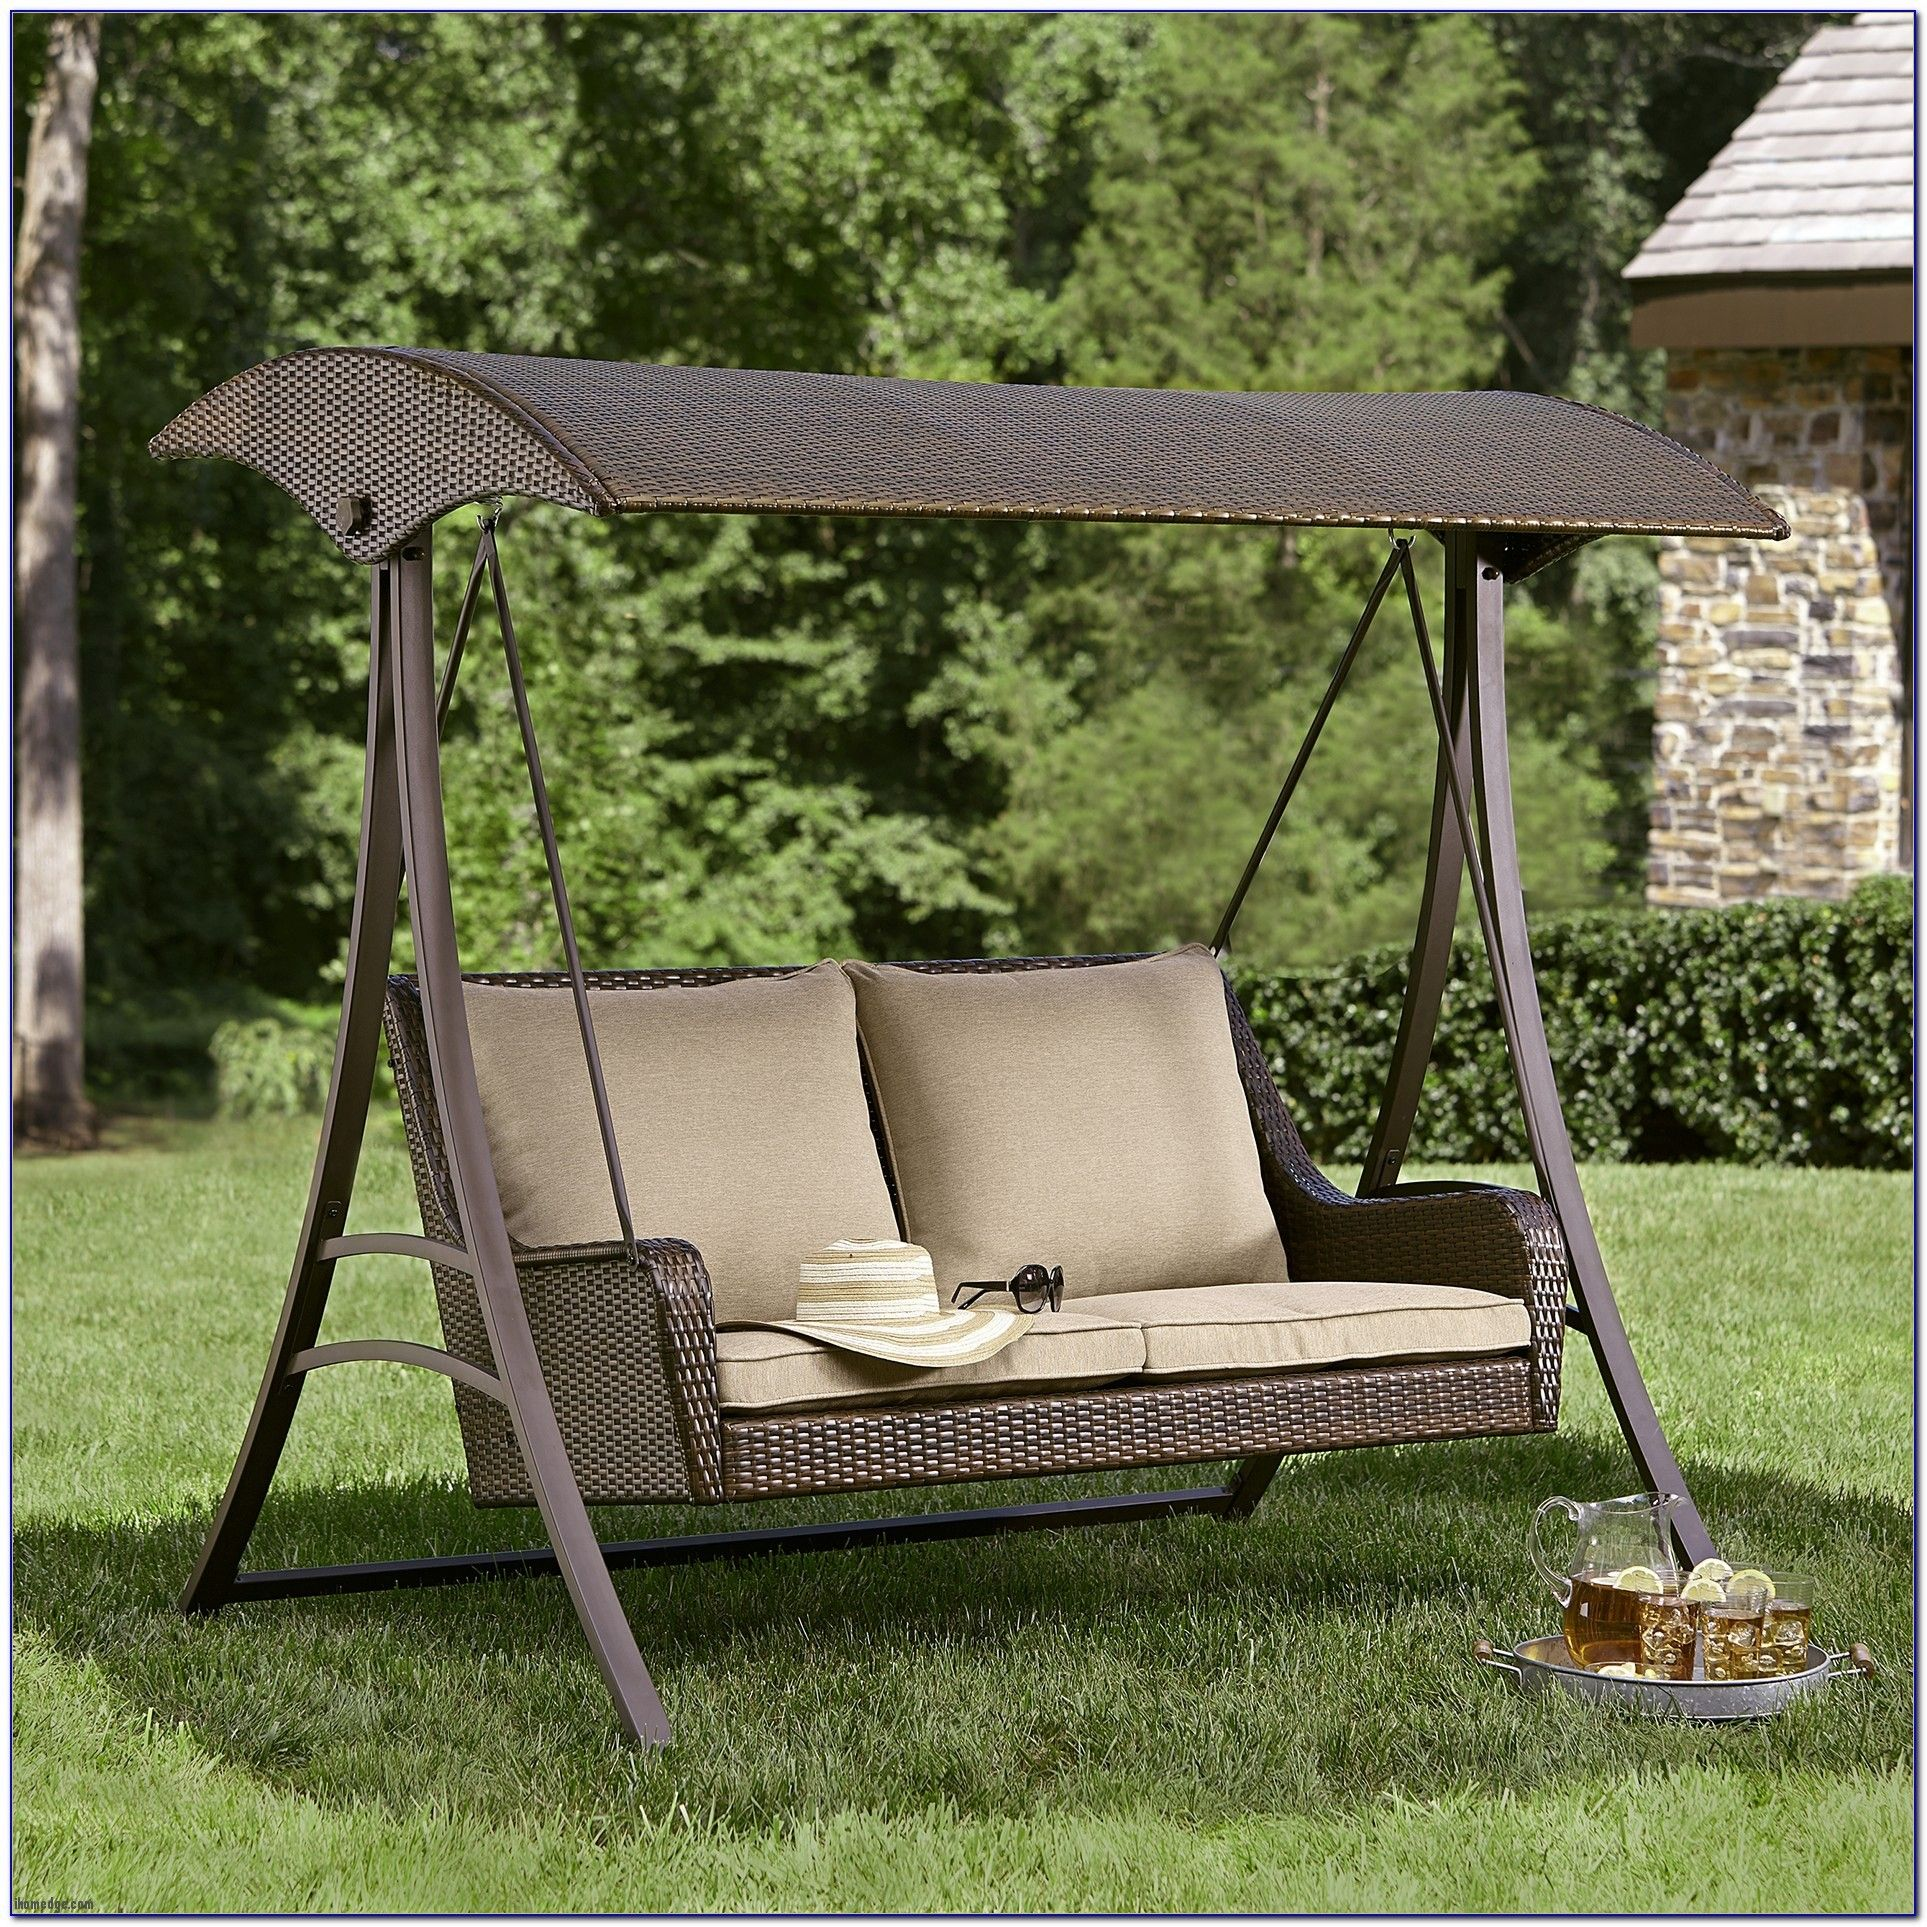 good Wonderful Sears Outdoor Furniture Full Size of Patio Ty